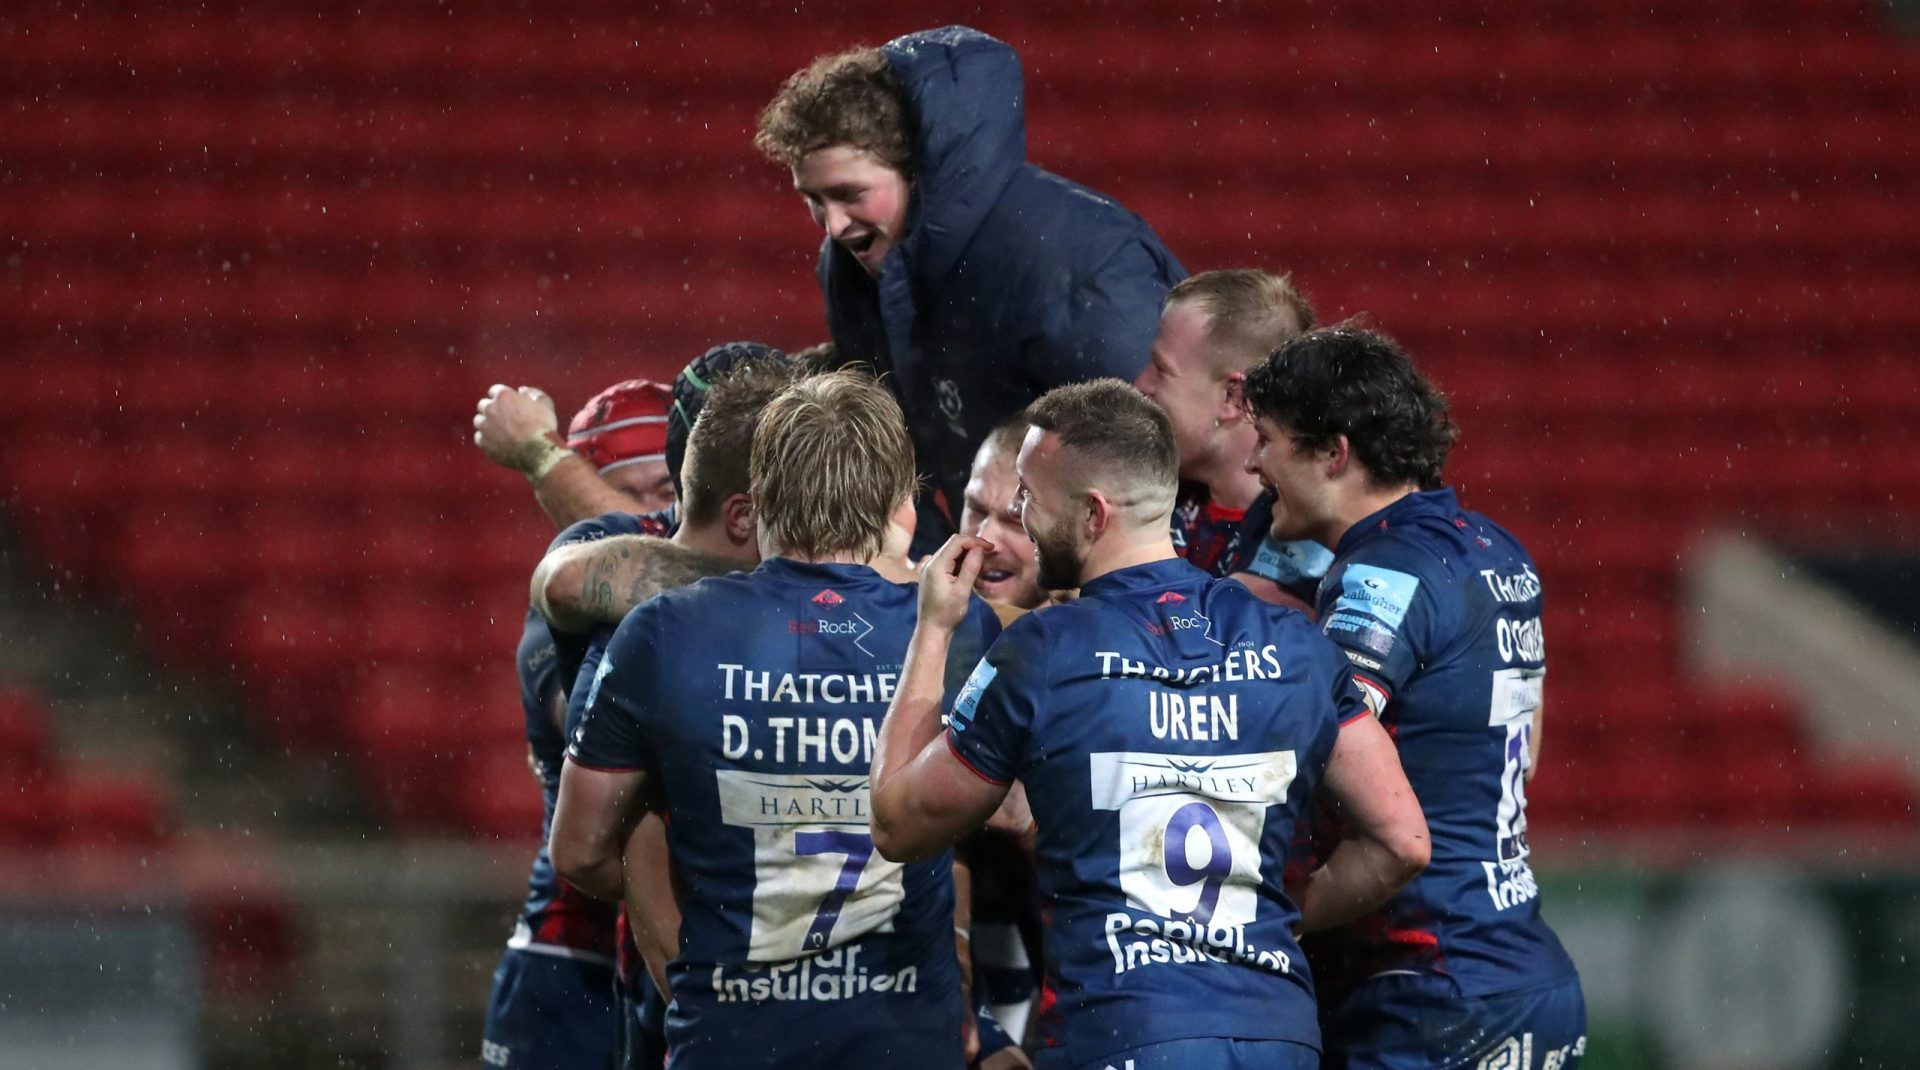 Bristol claim dramatic win over Northampton with final kick of game